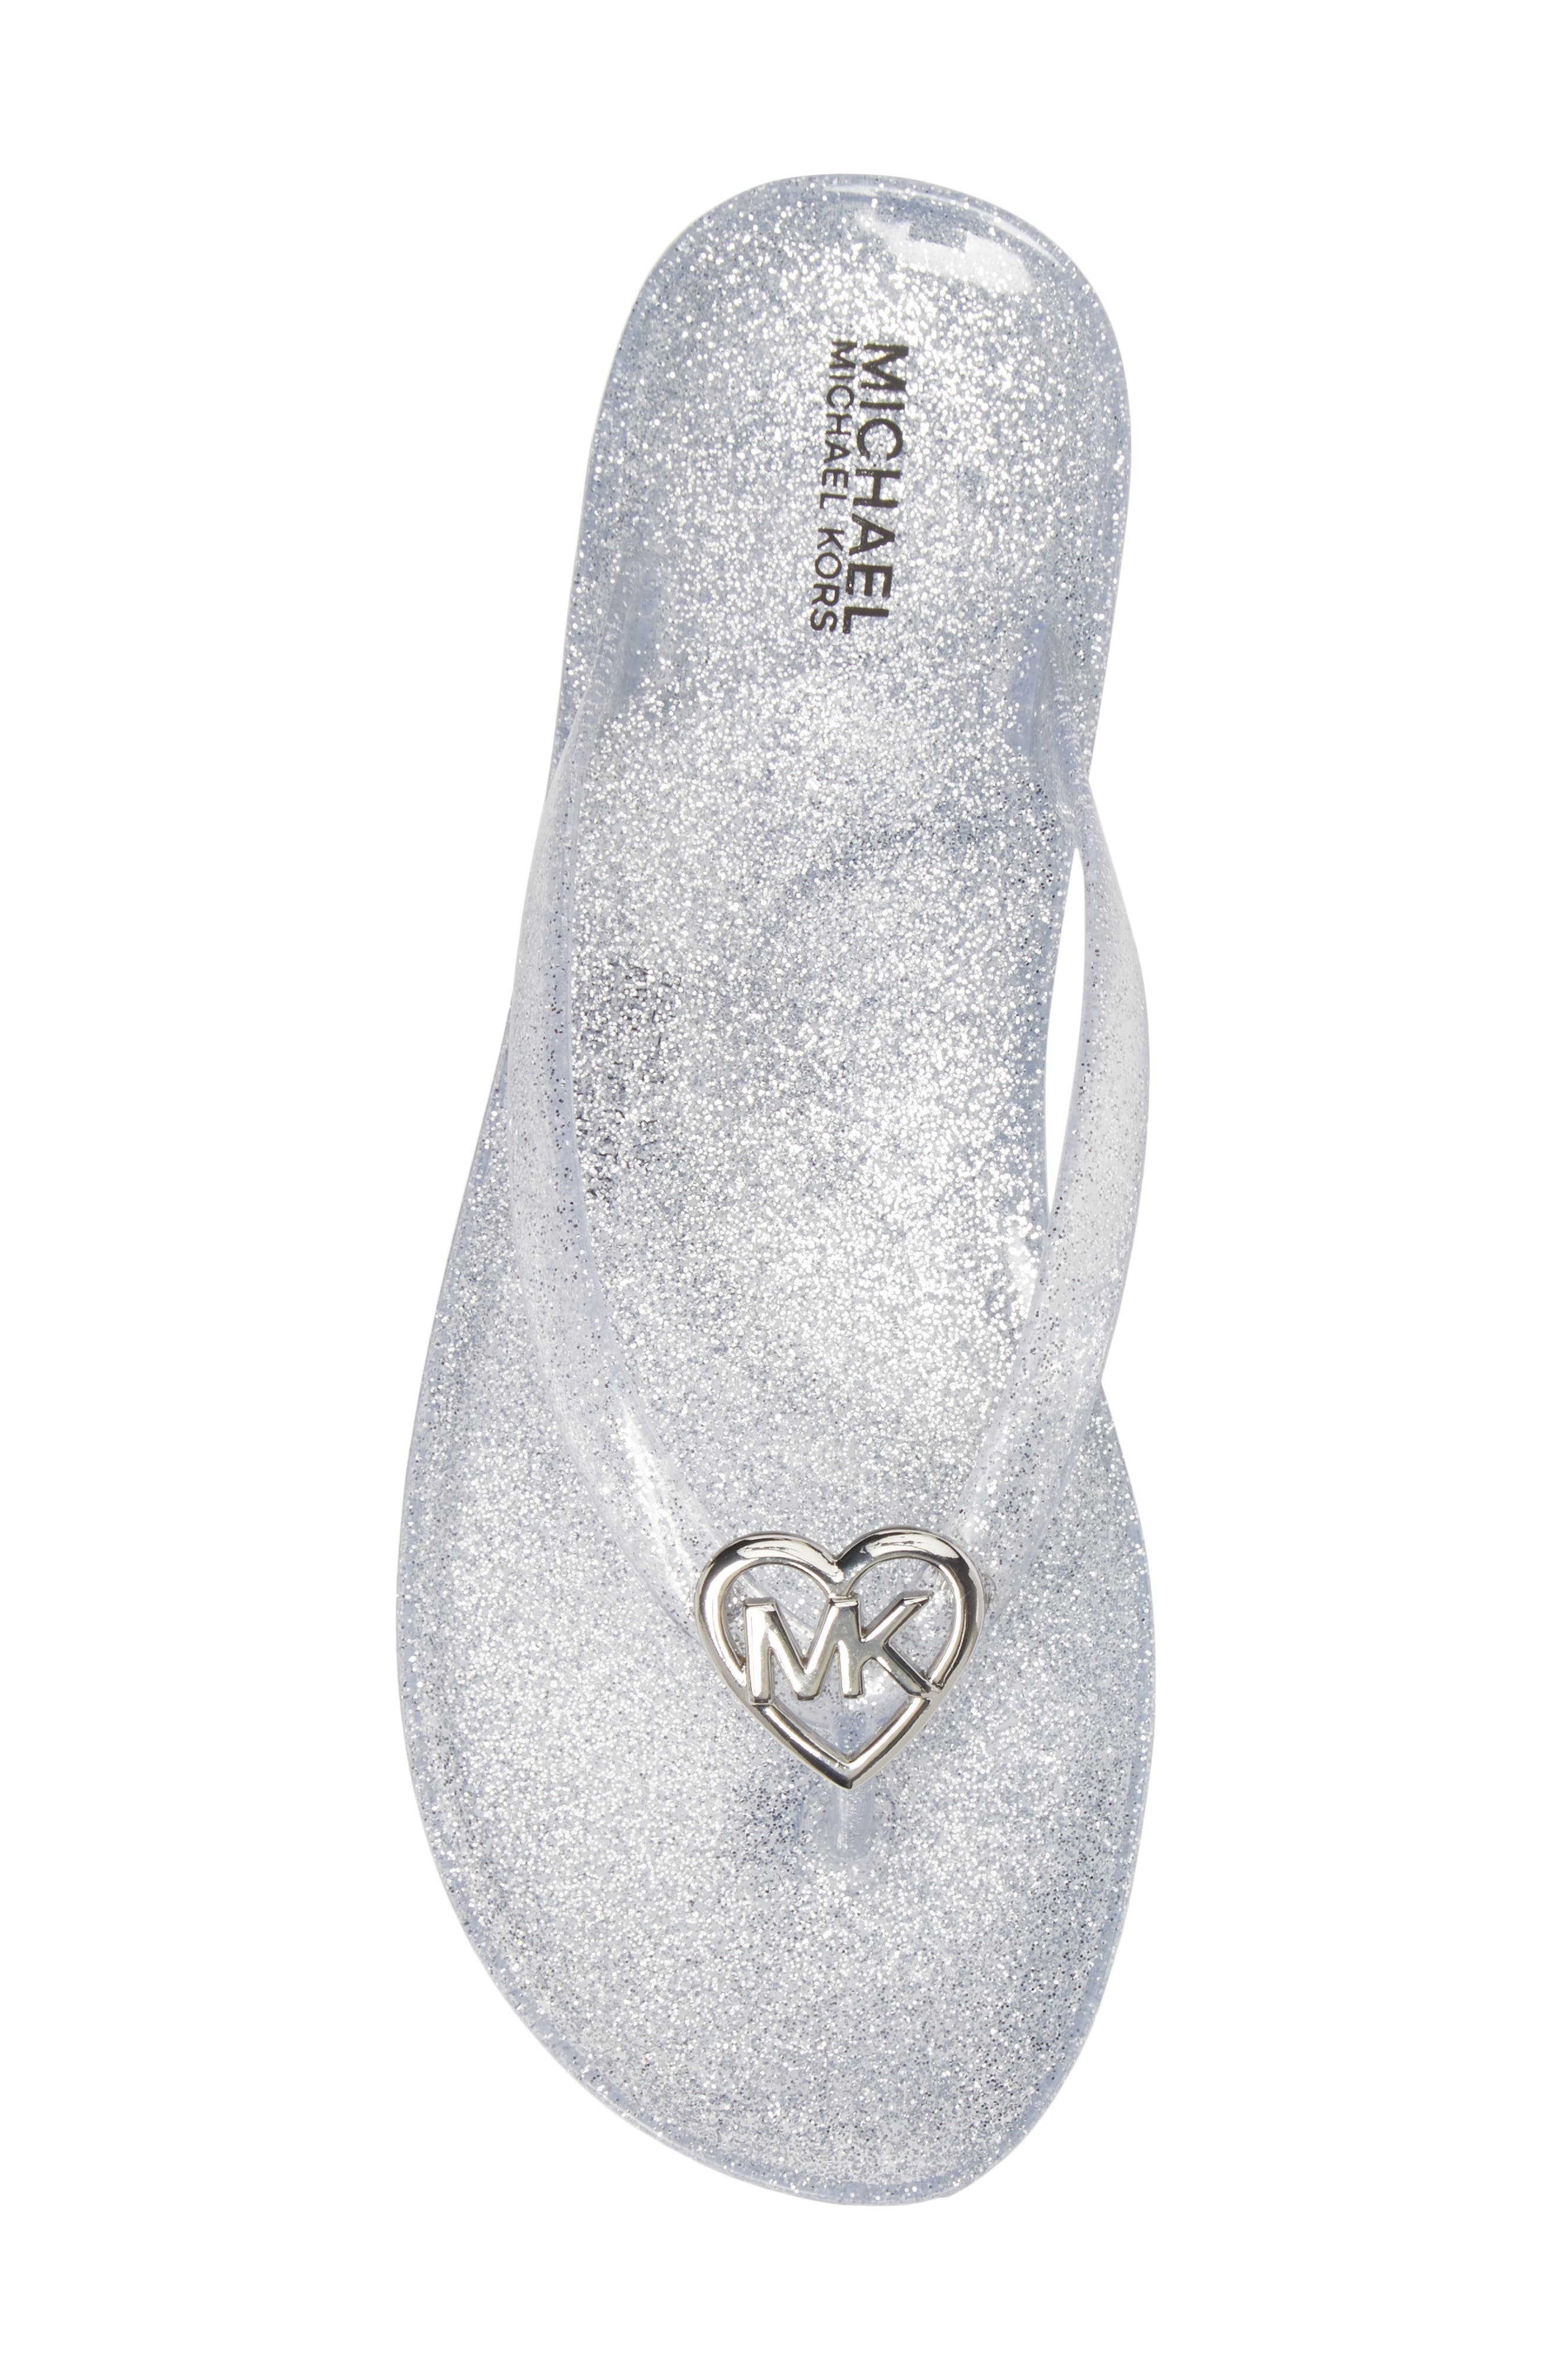 Trish Glare Glitter Flip Flop,                             Alternate thumbnail 5, color,                             Silver Glitter